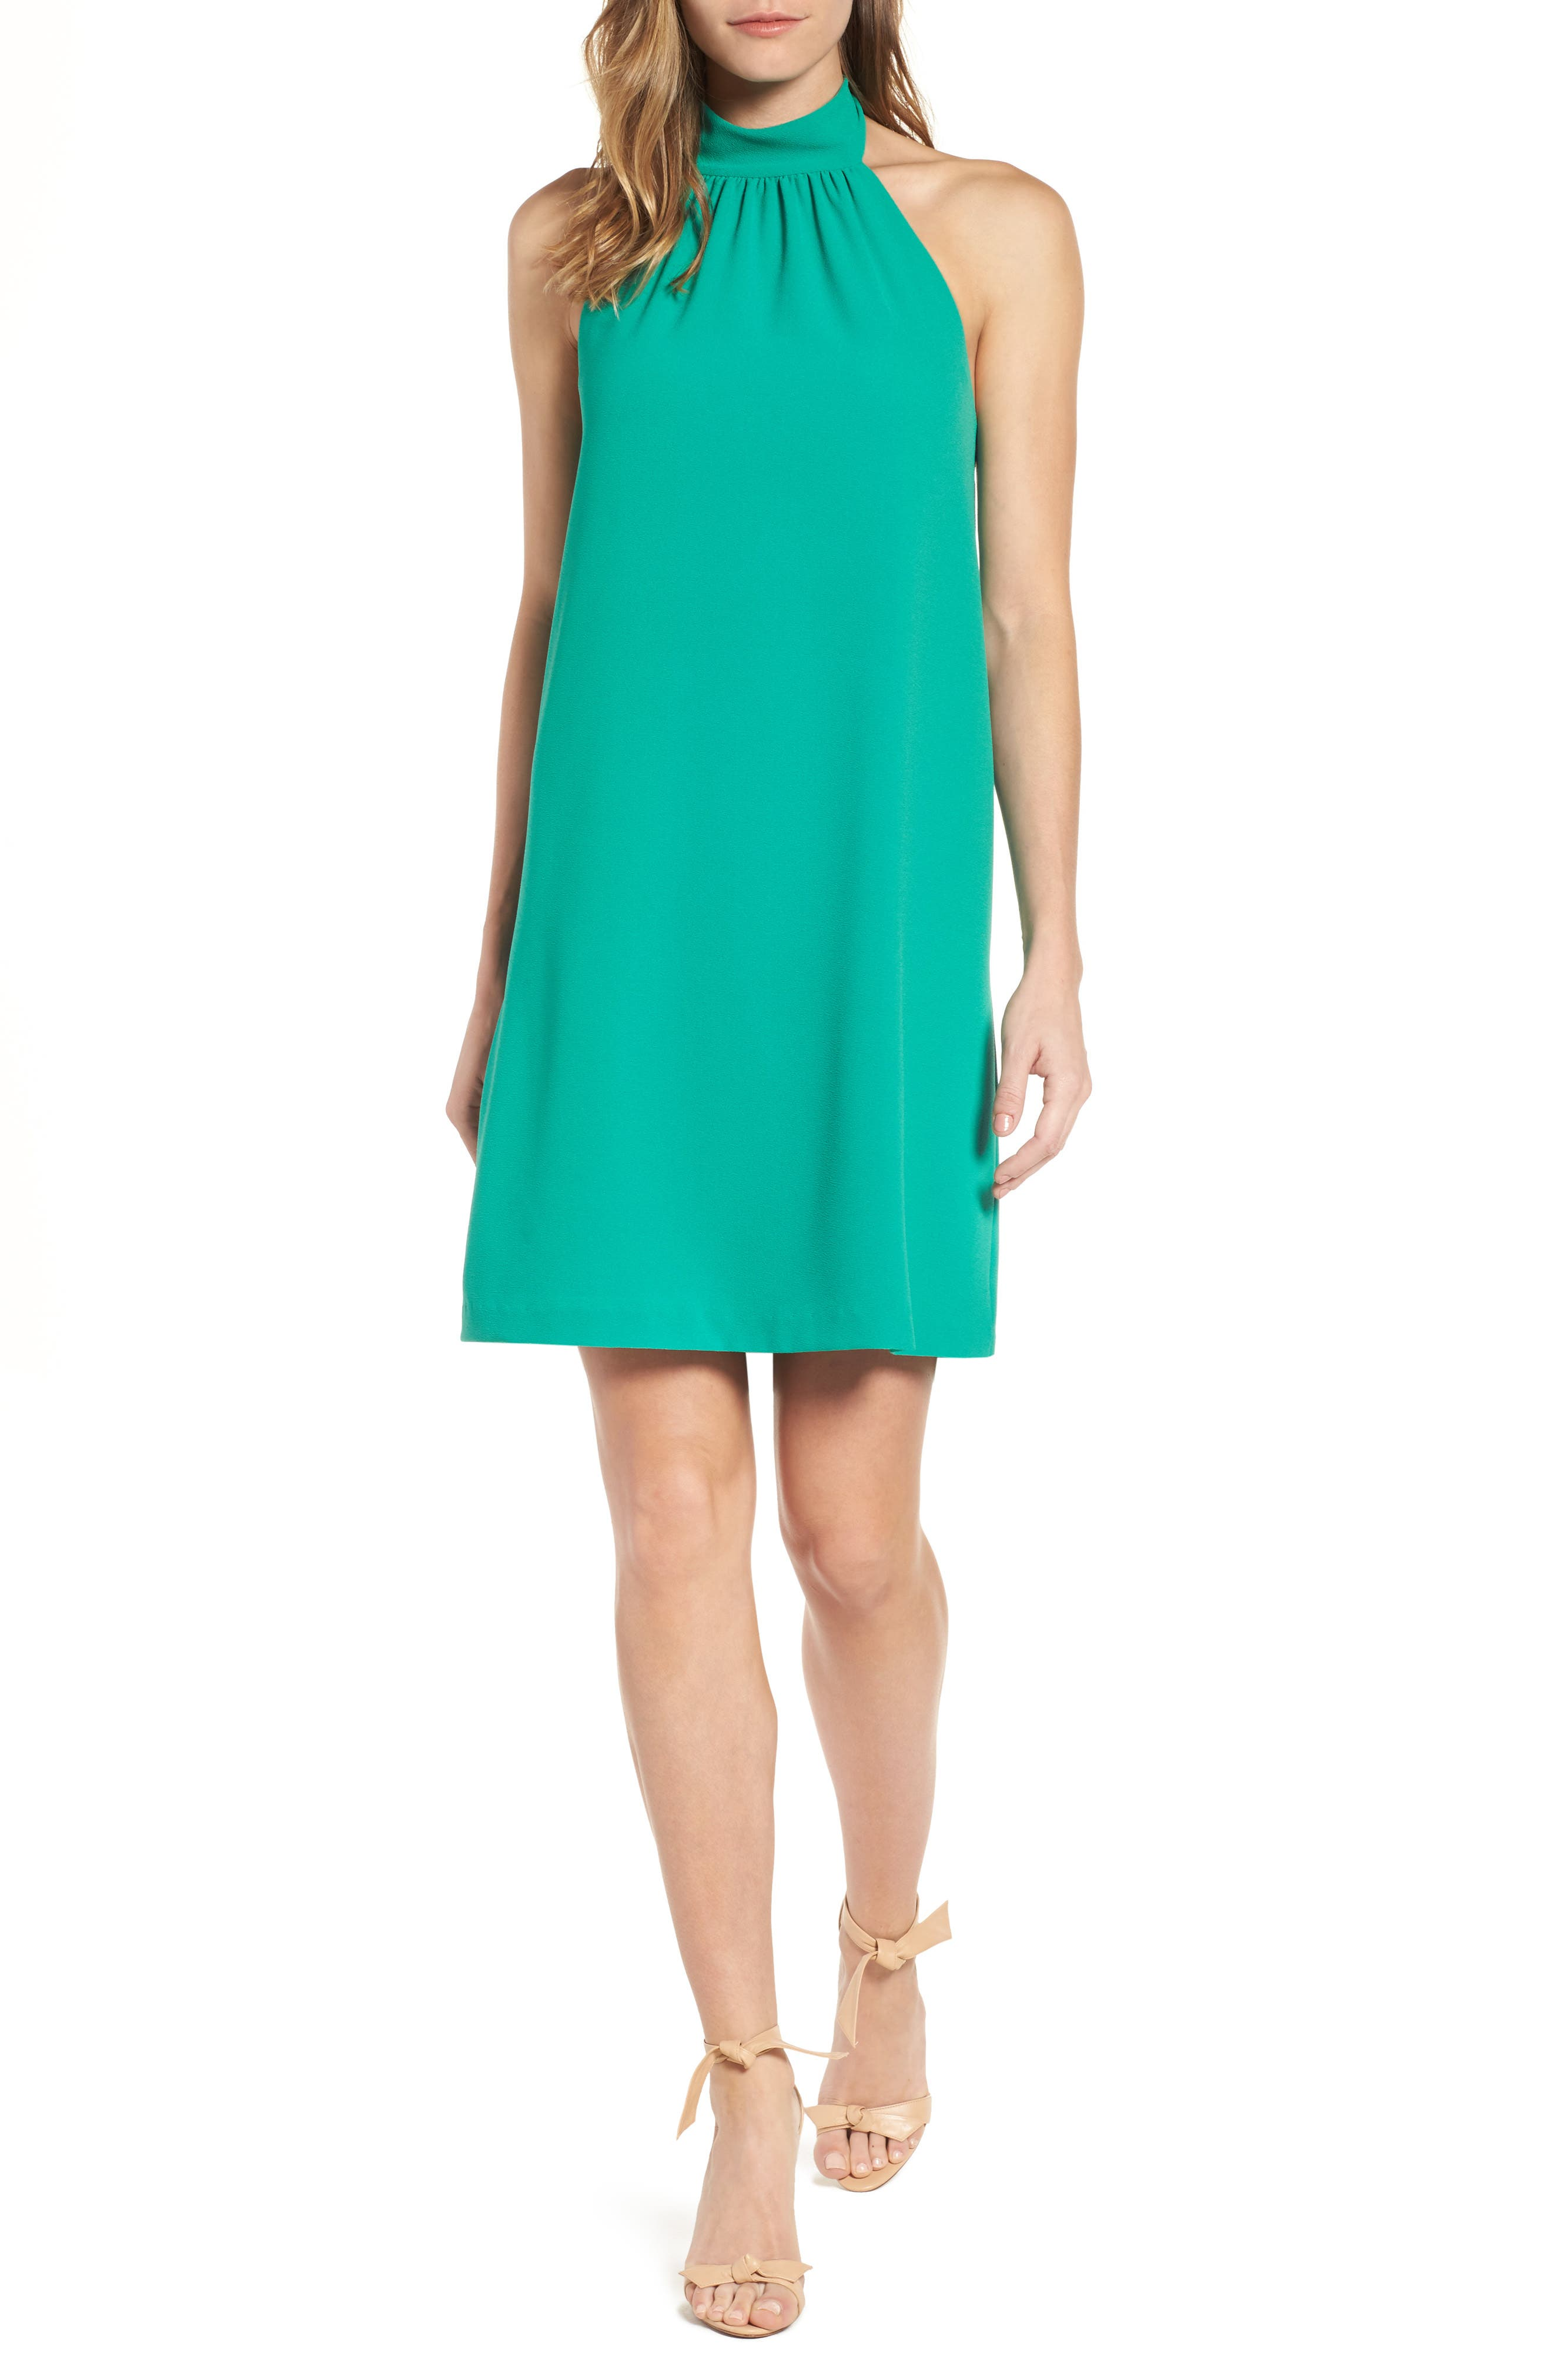 Felicity & Coco Halter Shift Dress (Regular & Petite) (Nordstrom Exclusive)